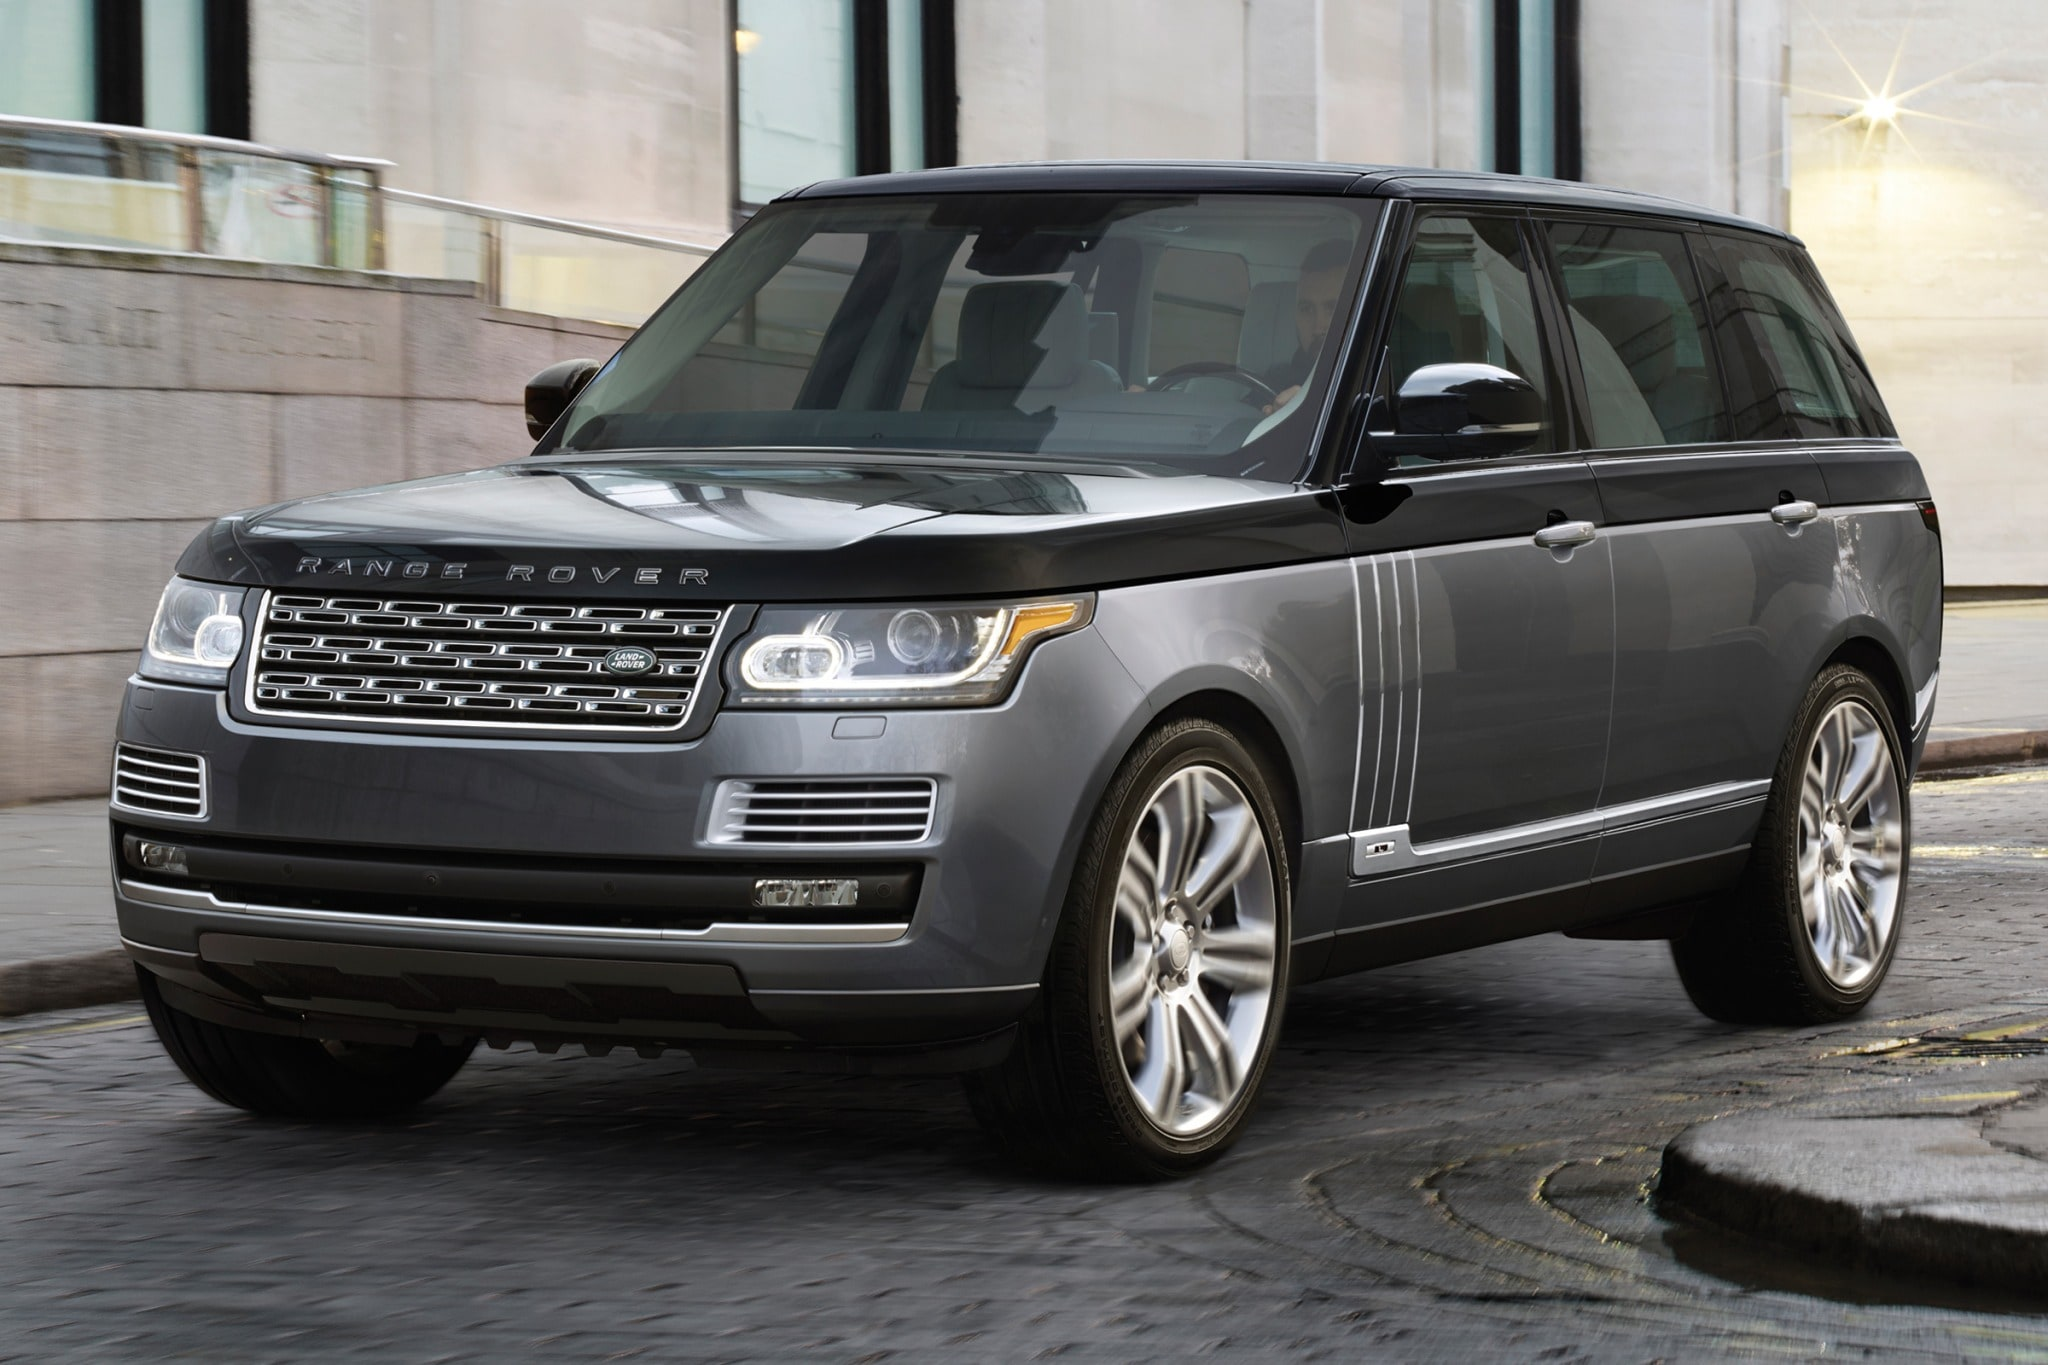 Maintenance Schedule for 2016 Land Rover Range Rover